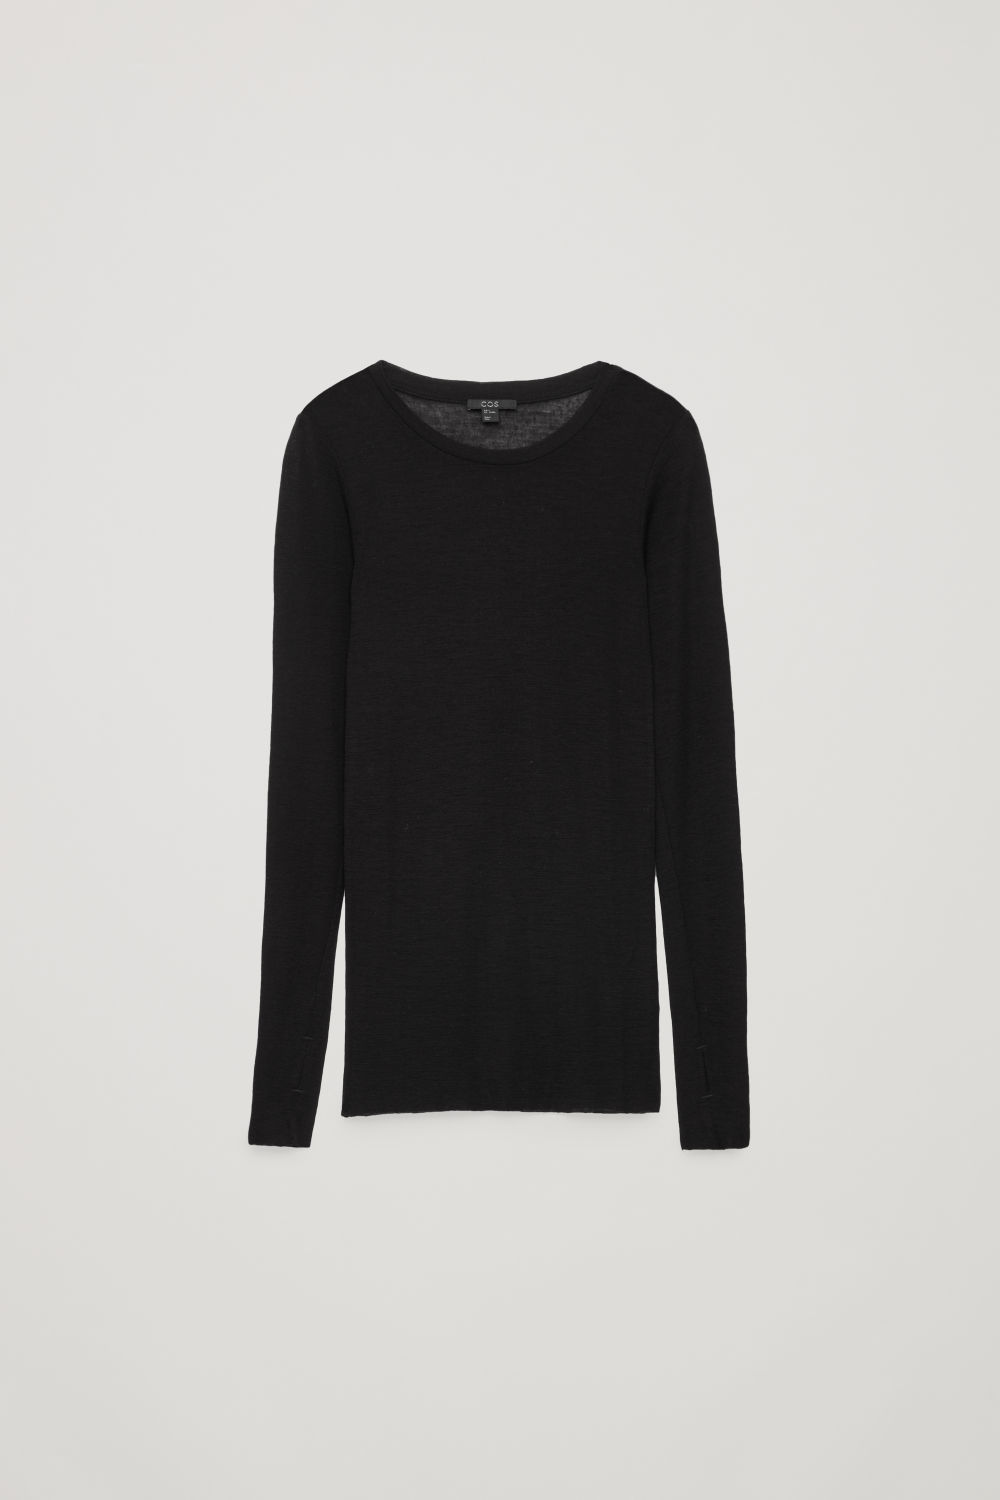 SHEER WOOL LONG-SLEEVED TOP